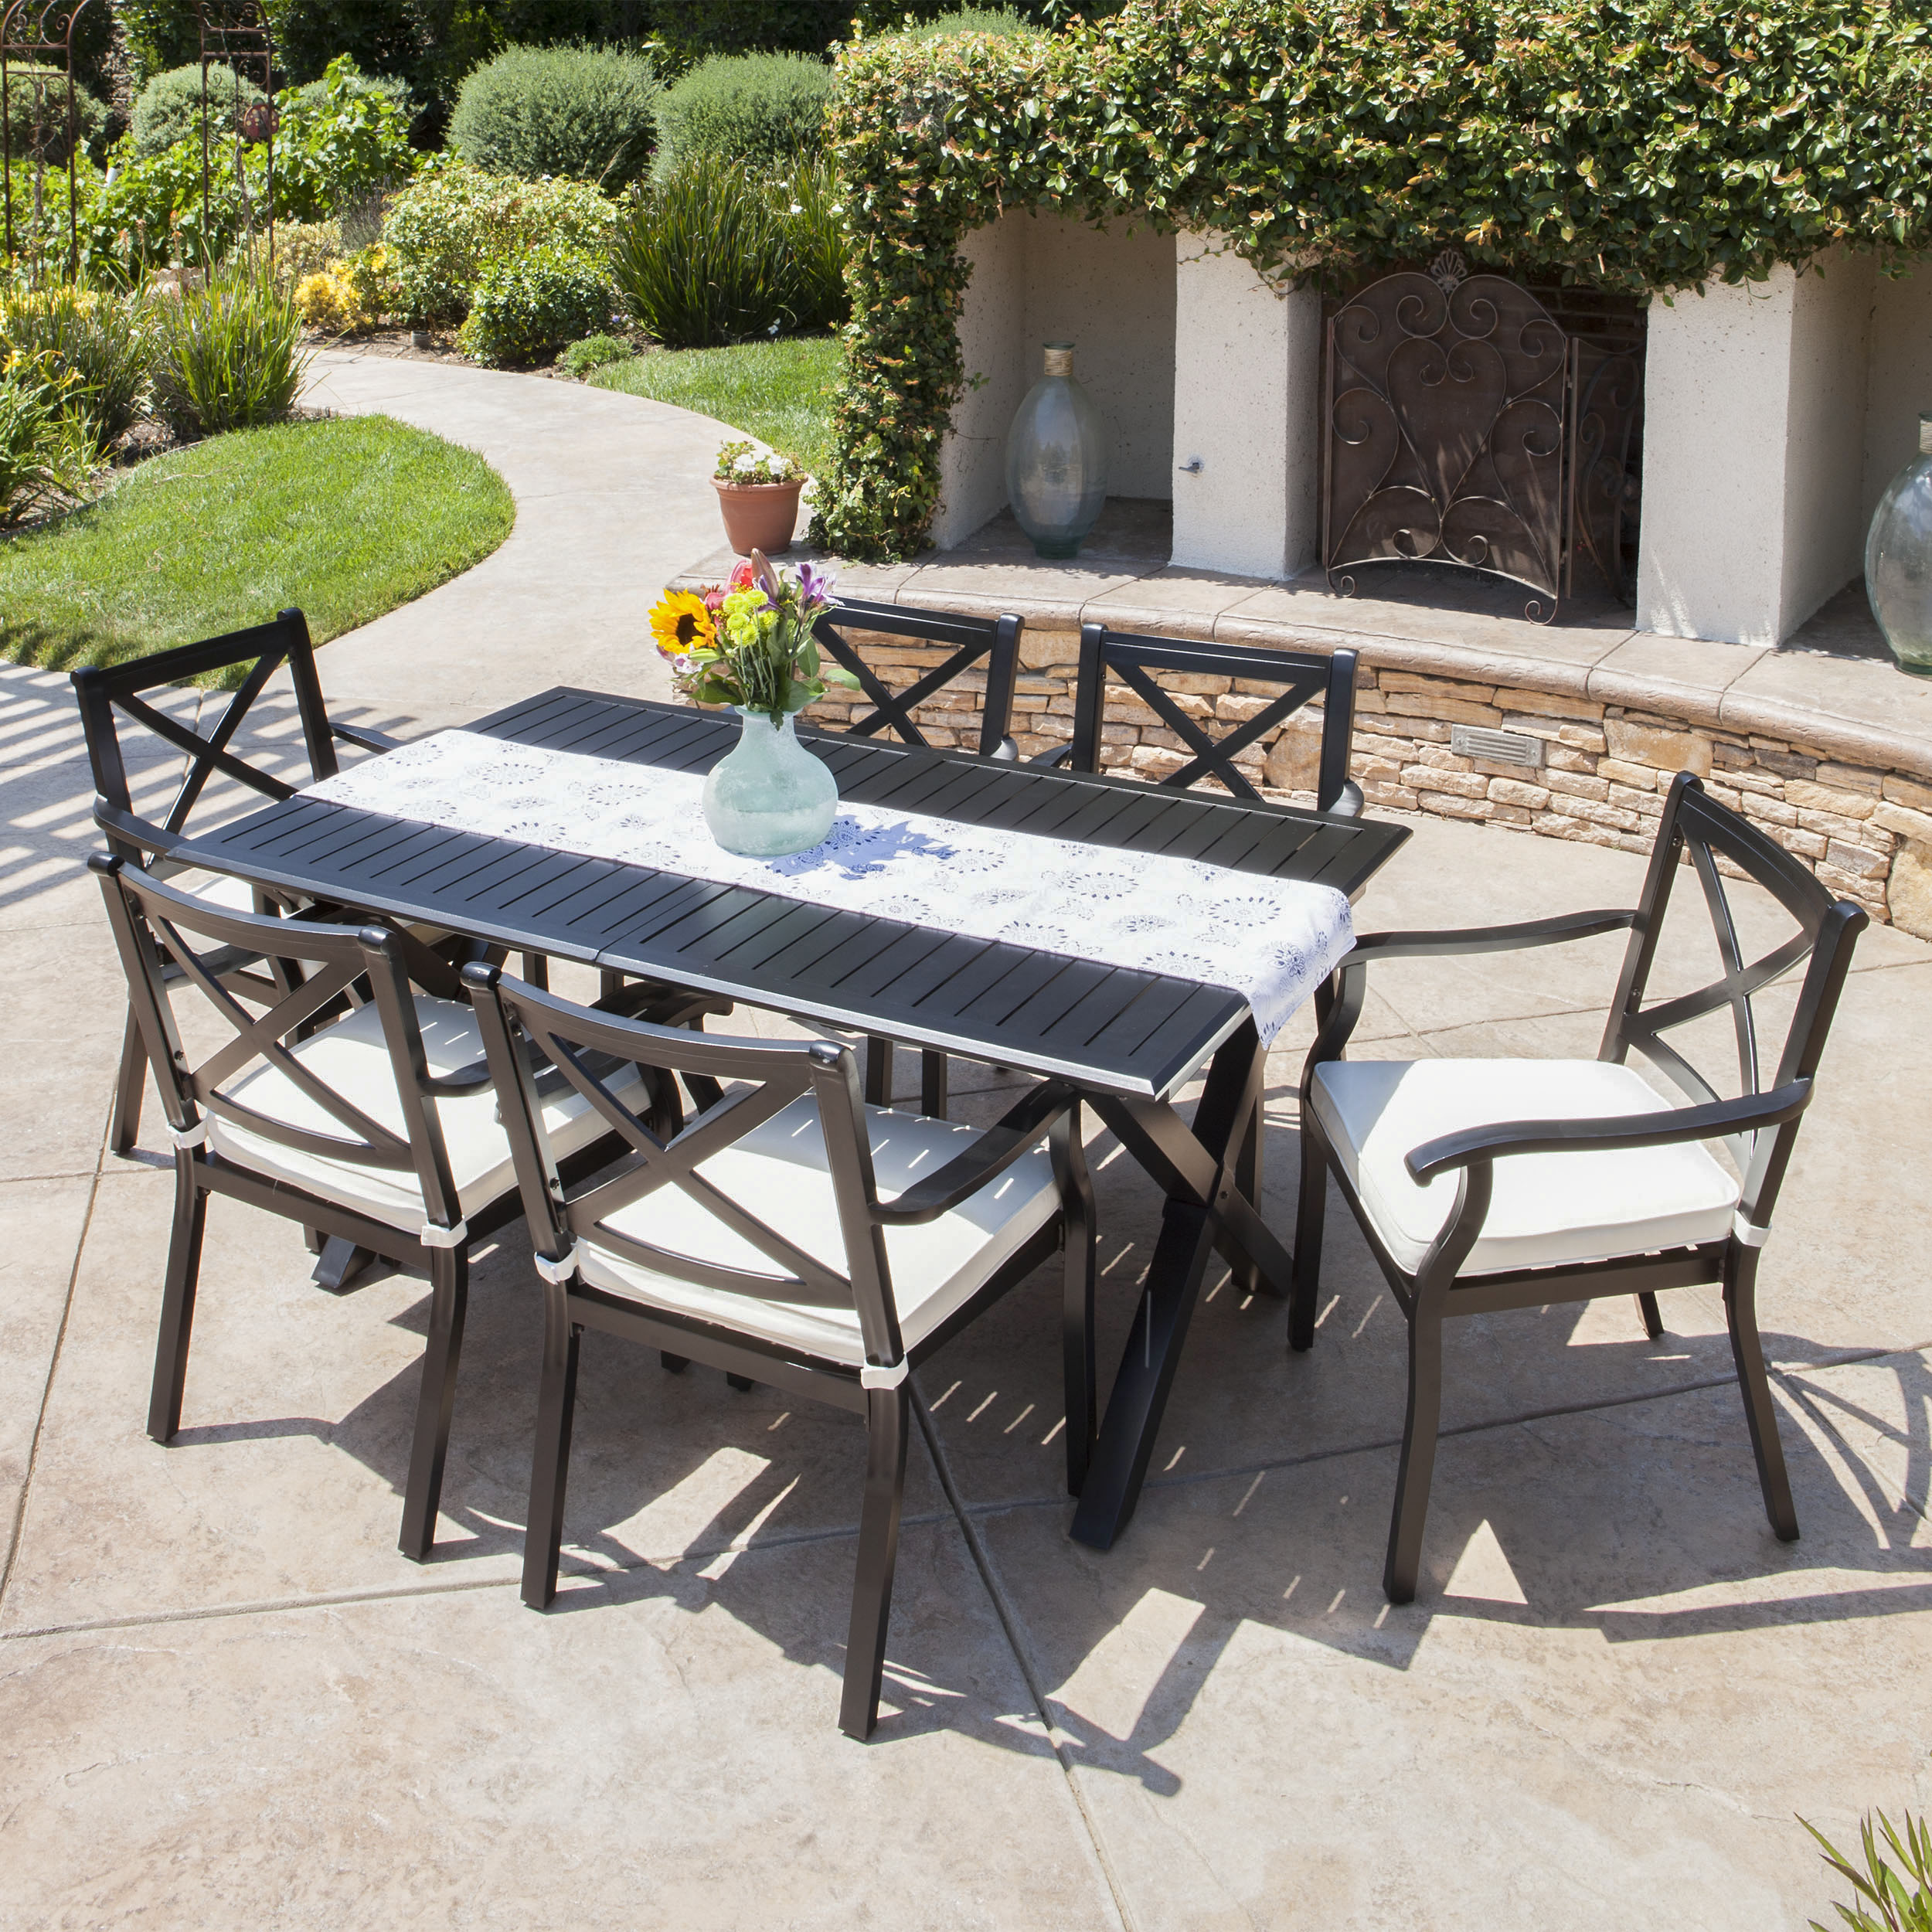 Outdoor Expandable 7 Piece Cast Aluminum Dining Set with Cushions,Ivory,Black